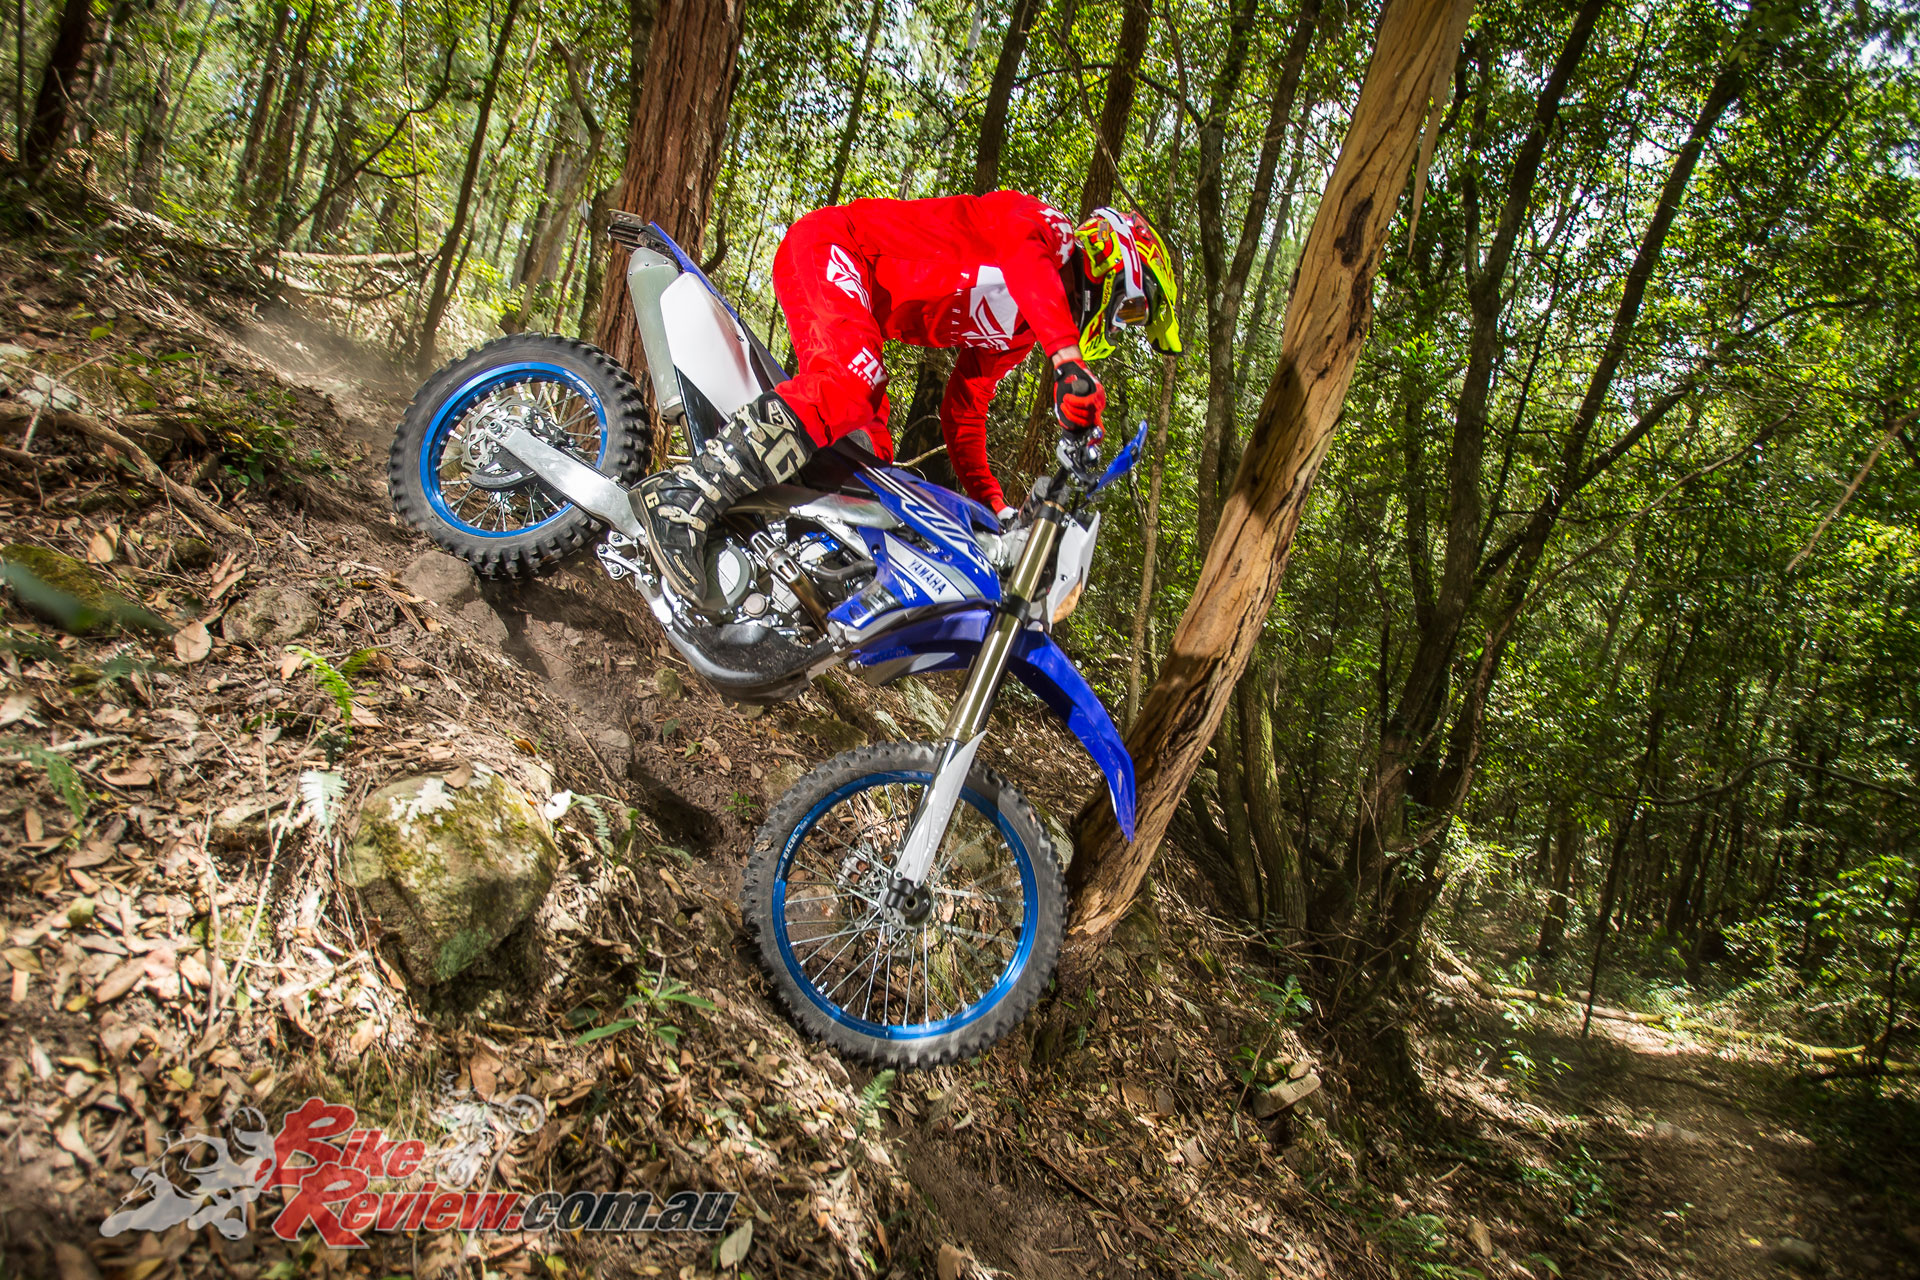 Ben found the new WR450F just abut faultless, particularly once mapped to his liking via the Power Tune App...